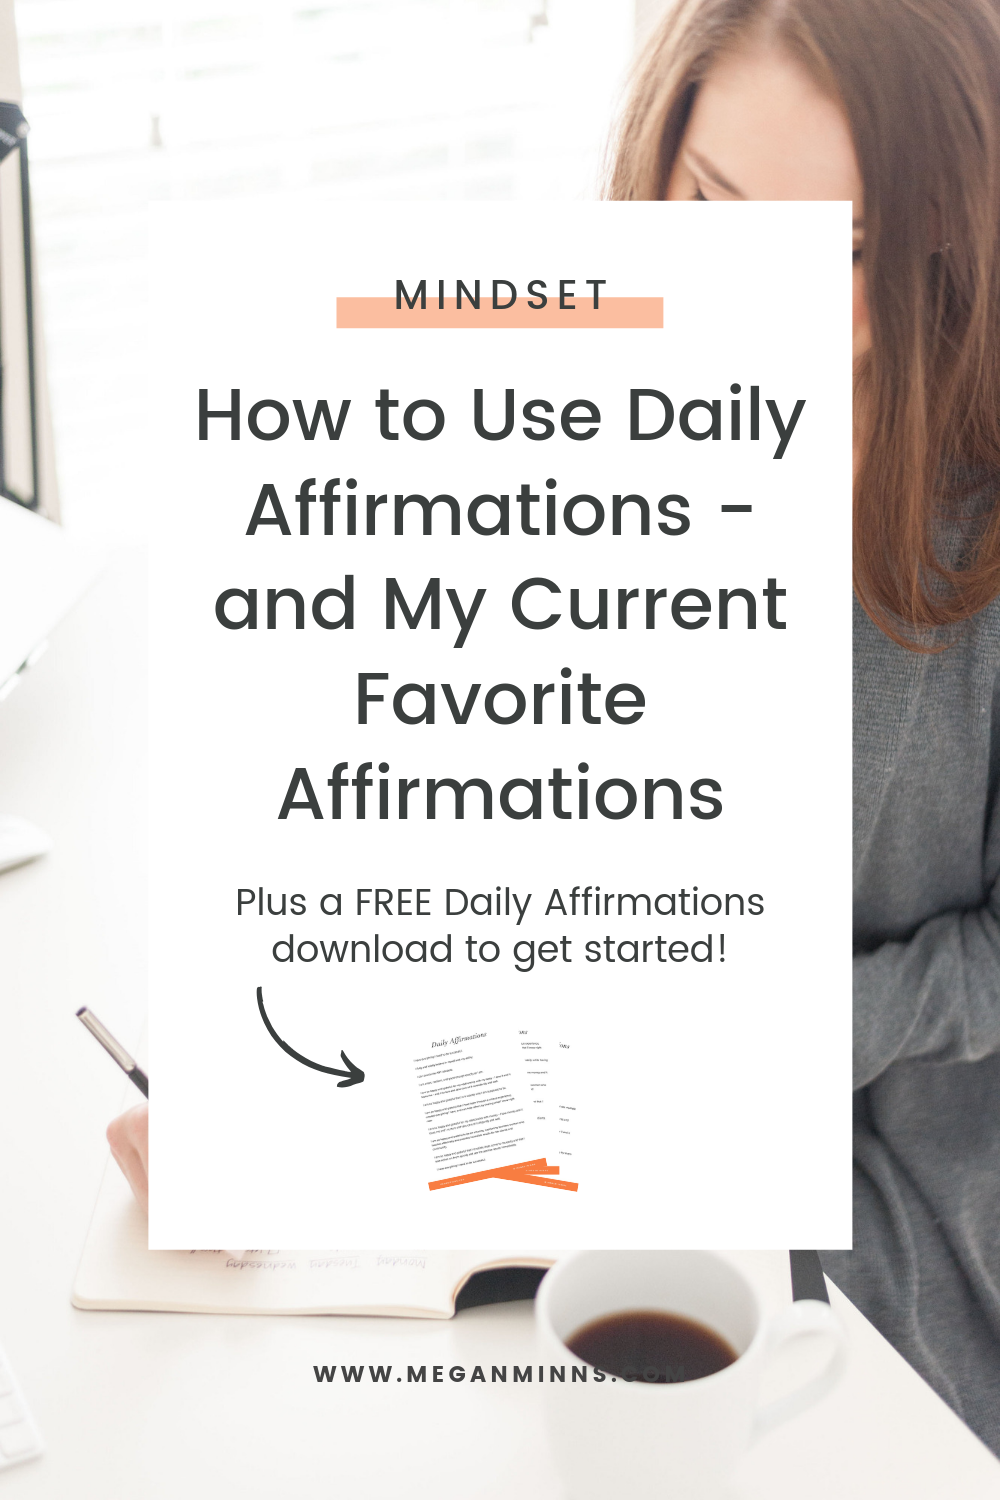 Do you use daily affirmations? Think they're too woo woo for you? Today I'm sharing exactly why and how to use affirmations and my current favorites! Also, don't forget to download your FREE Daily Affirmations download so you can get started! You're going to love using these.  READ THE FULL BLOG POST HERE: https://meganminns.com/blog/how-to-use-daily-affirmations